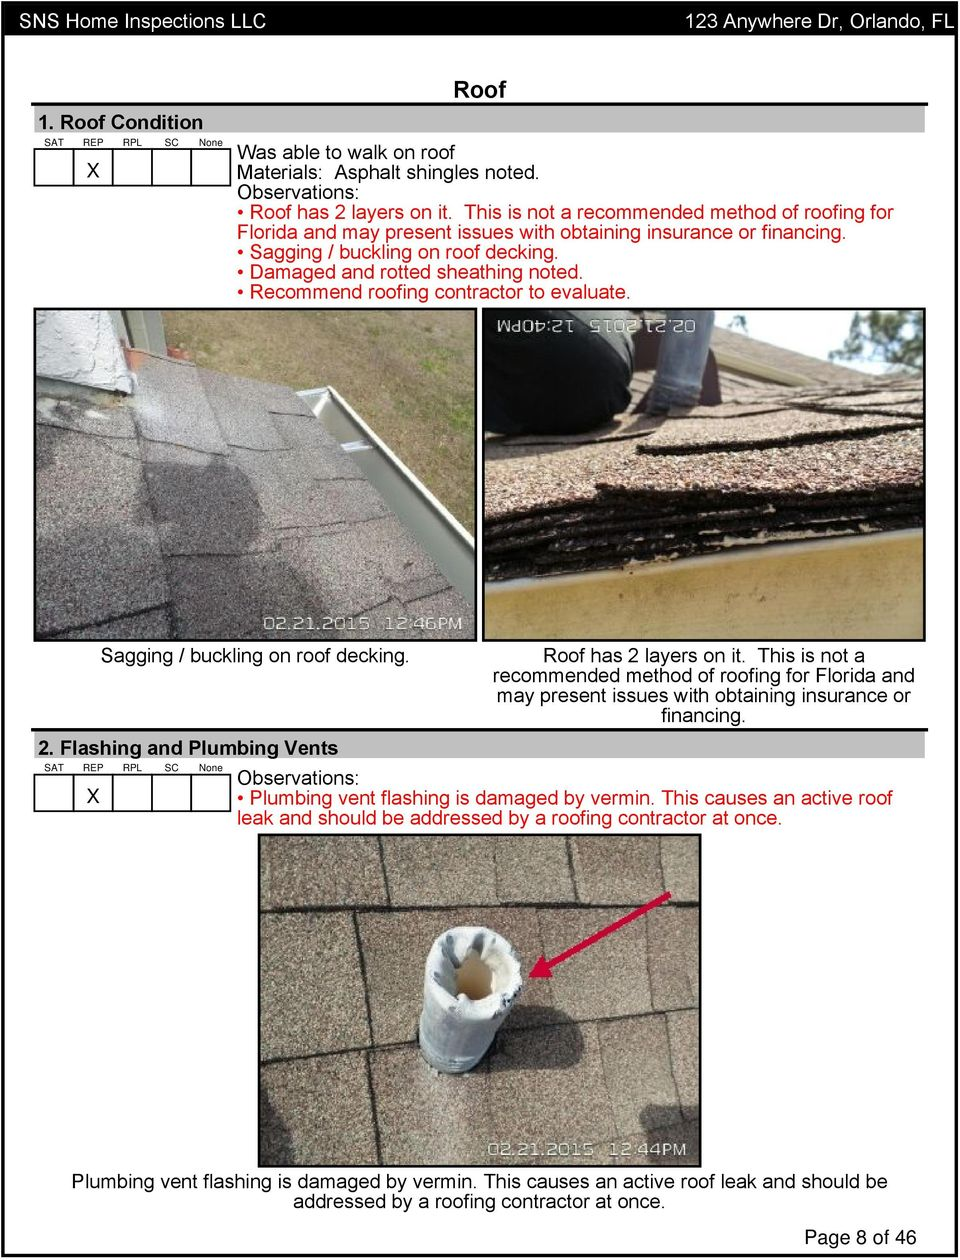 Recommend roofing contractor to evaluate. Sagging / buckling on roof decking. Roof has 2 layers on it.